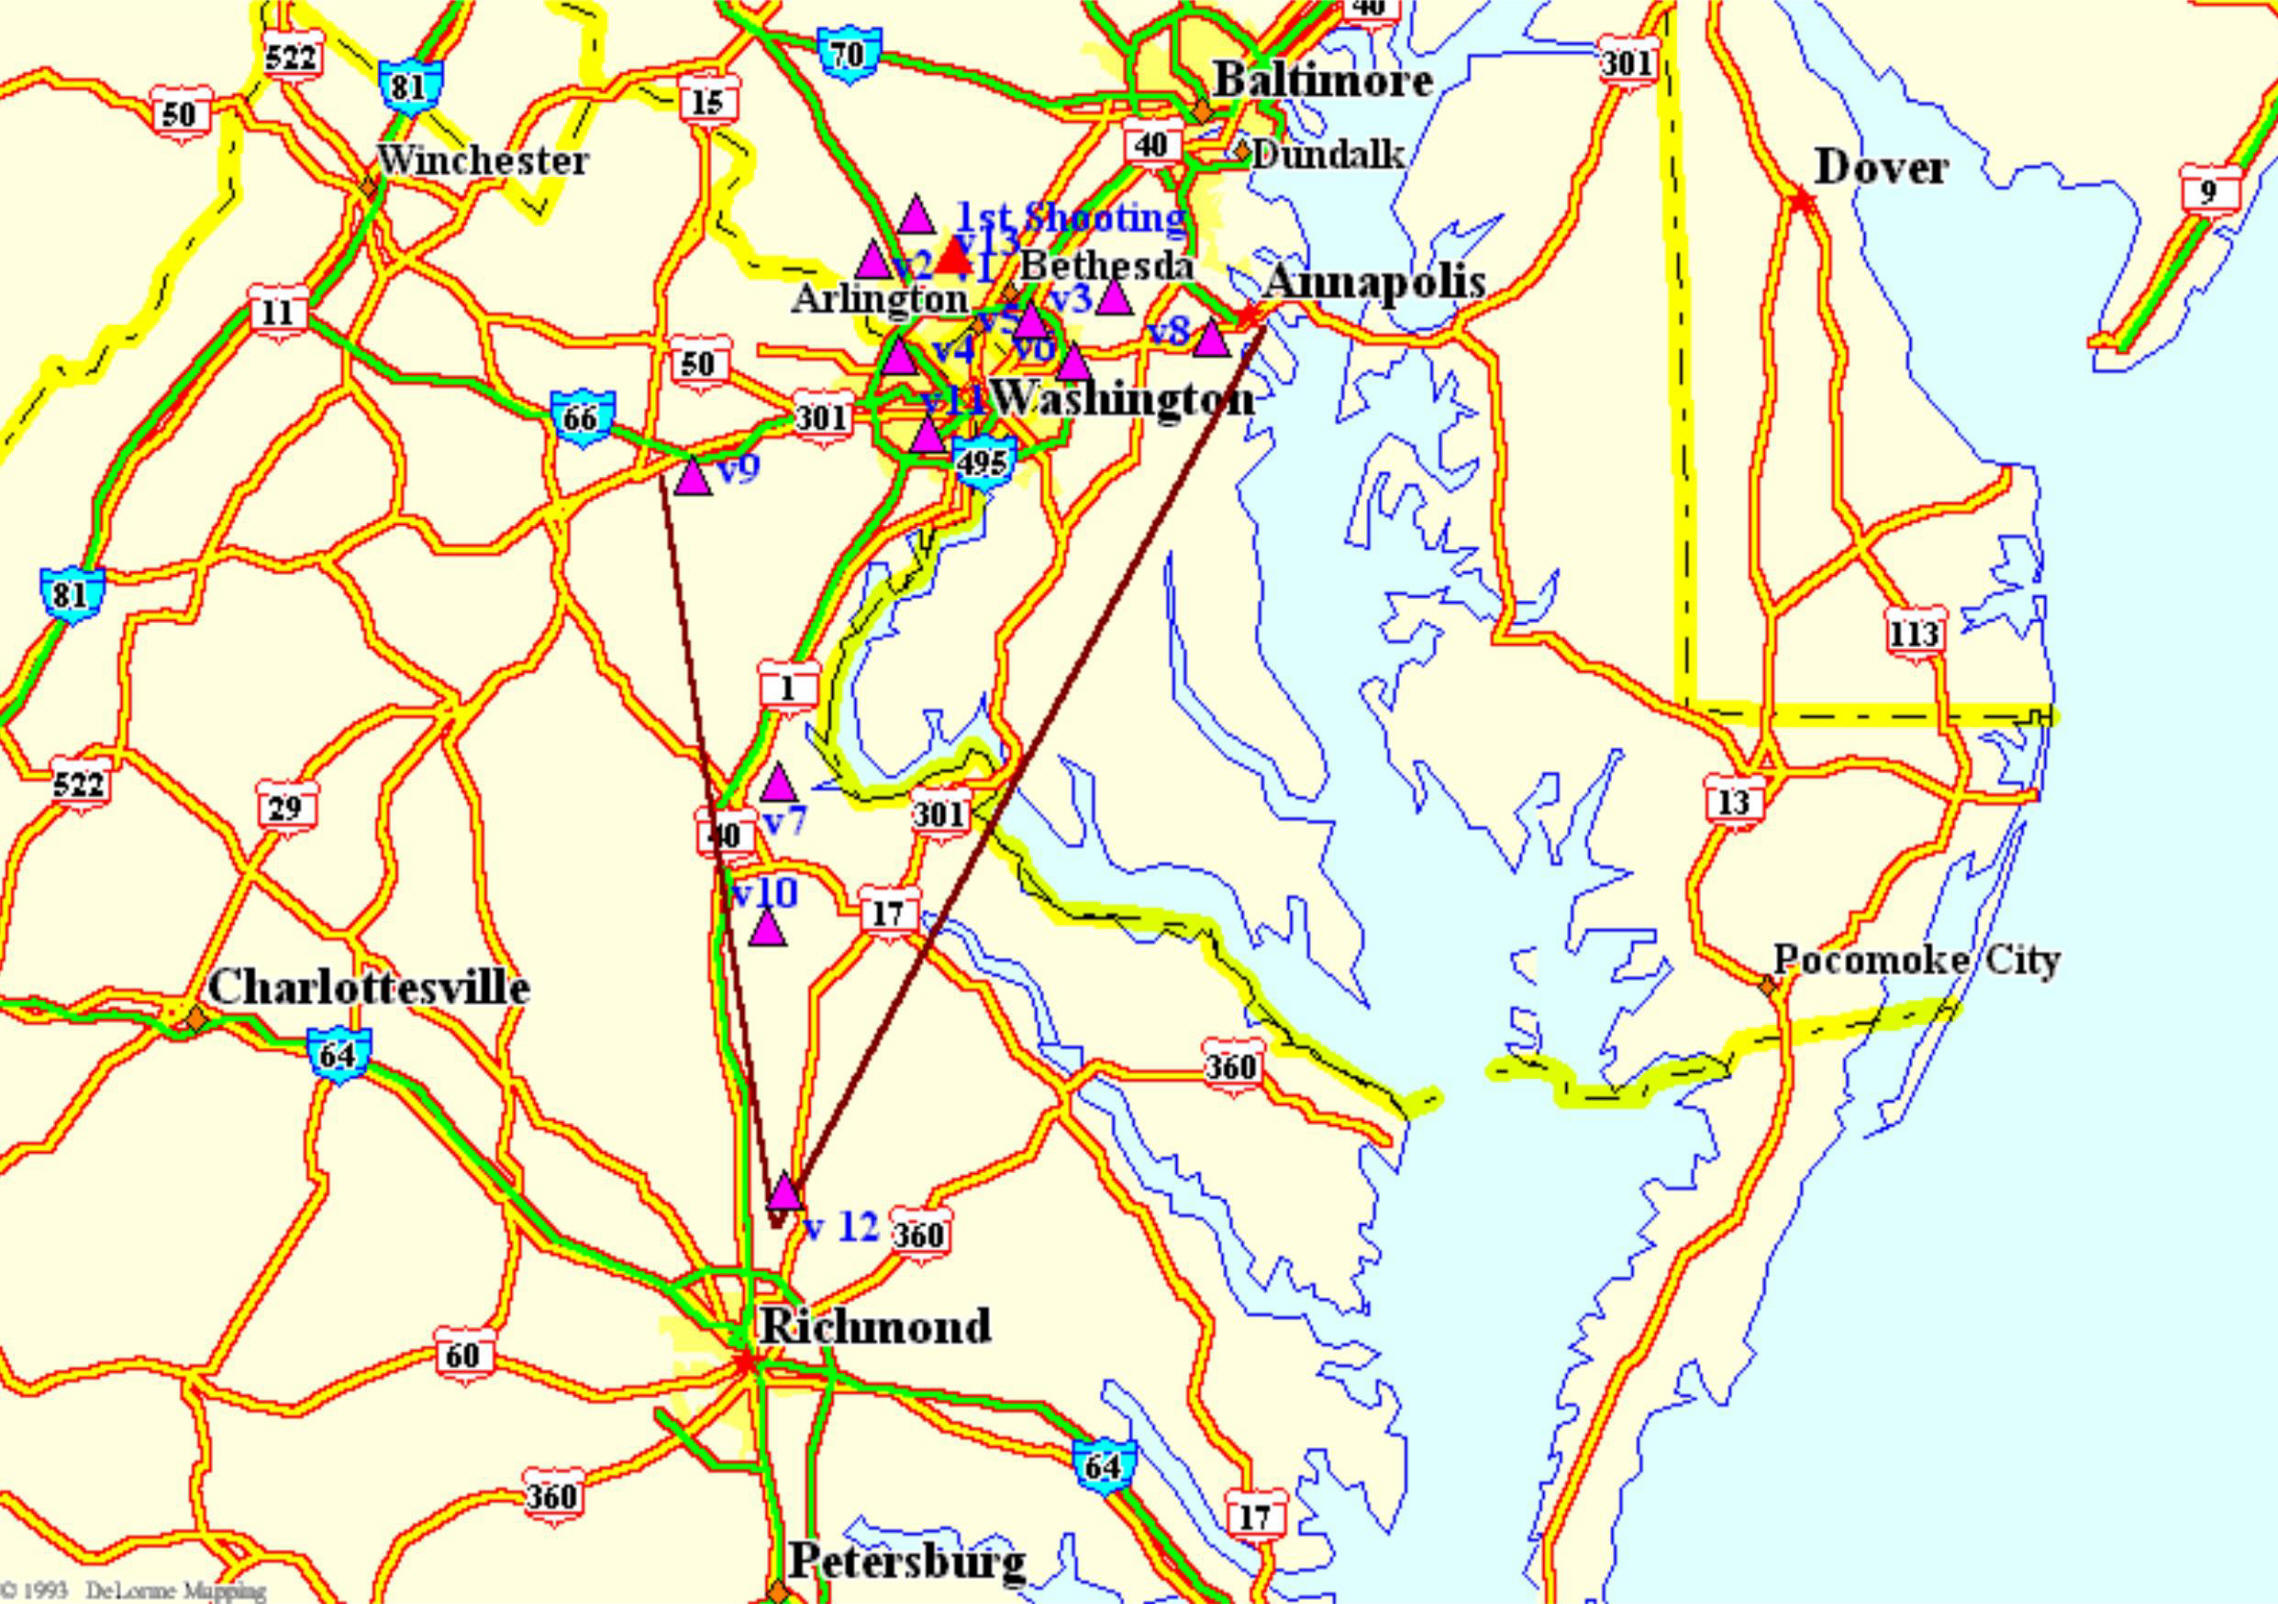 Maryland's Sniper Geographical Profile by Dr. Maurice Godwin on